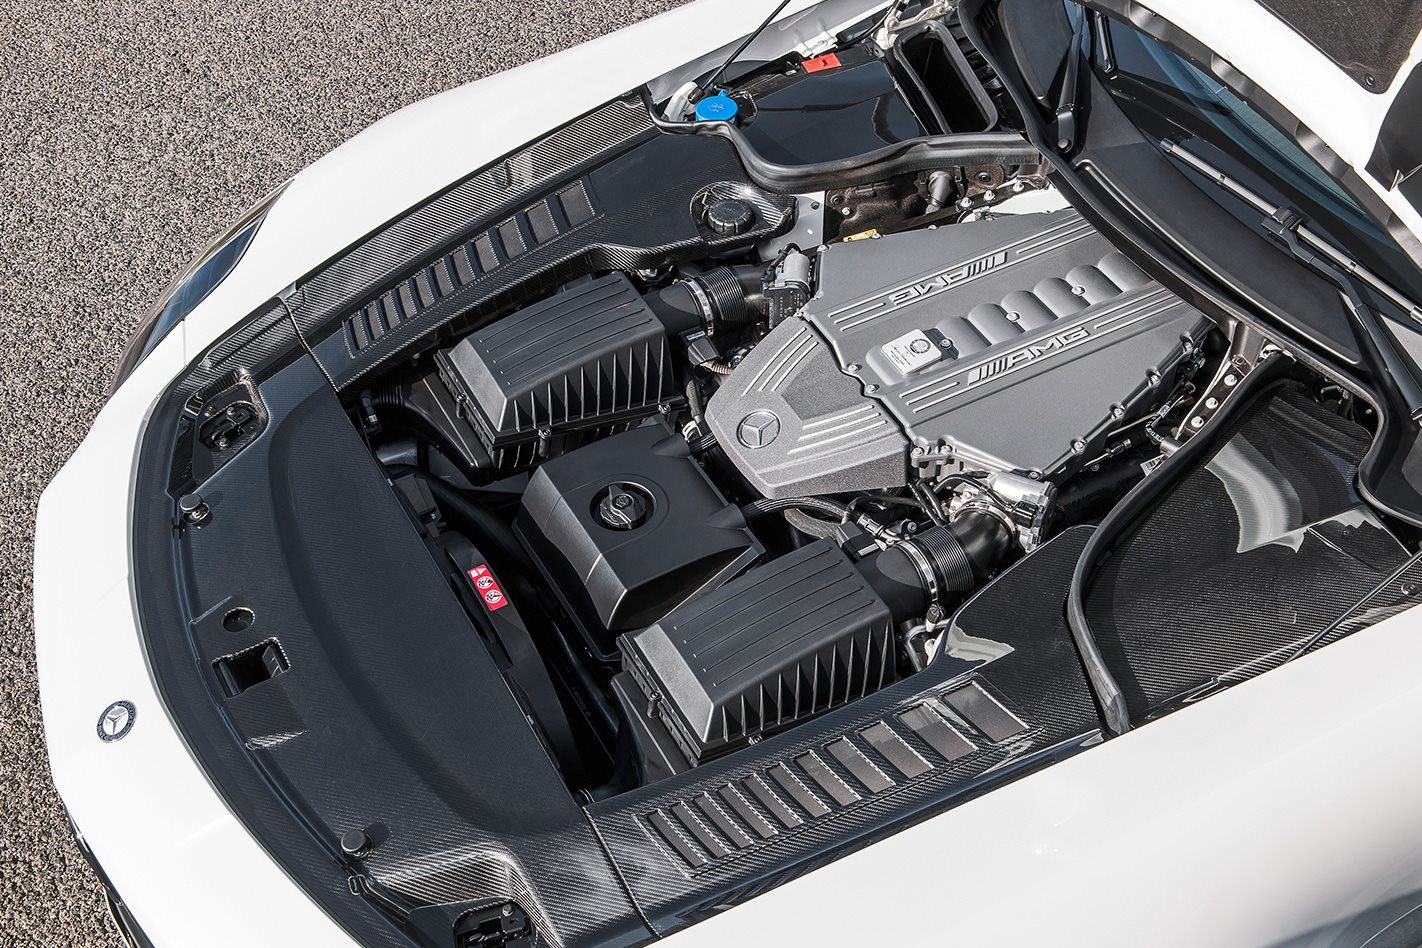 Mercedes-Benz-SLS-AMG-GT-engine.jpg